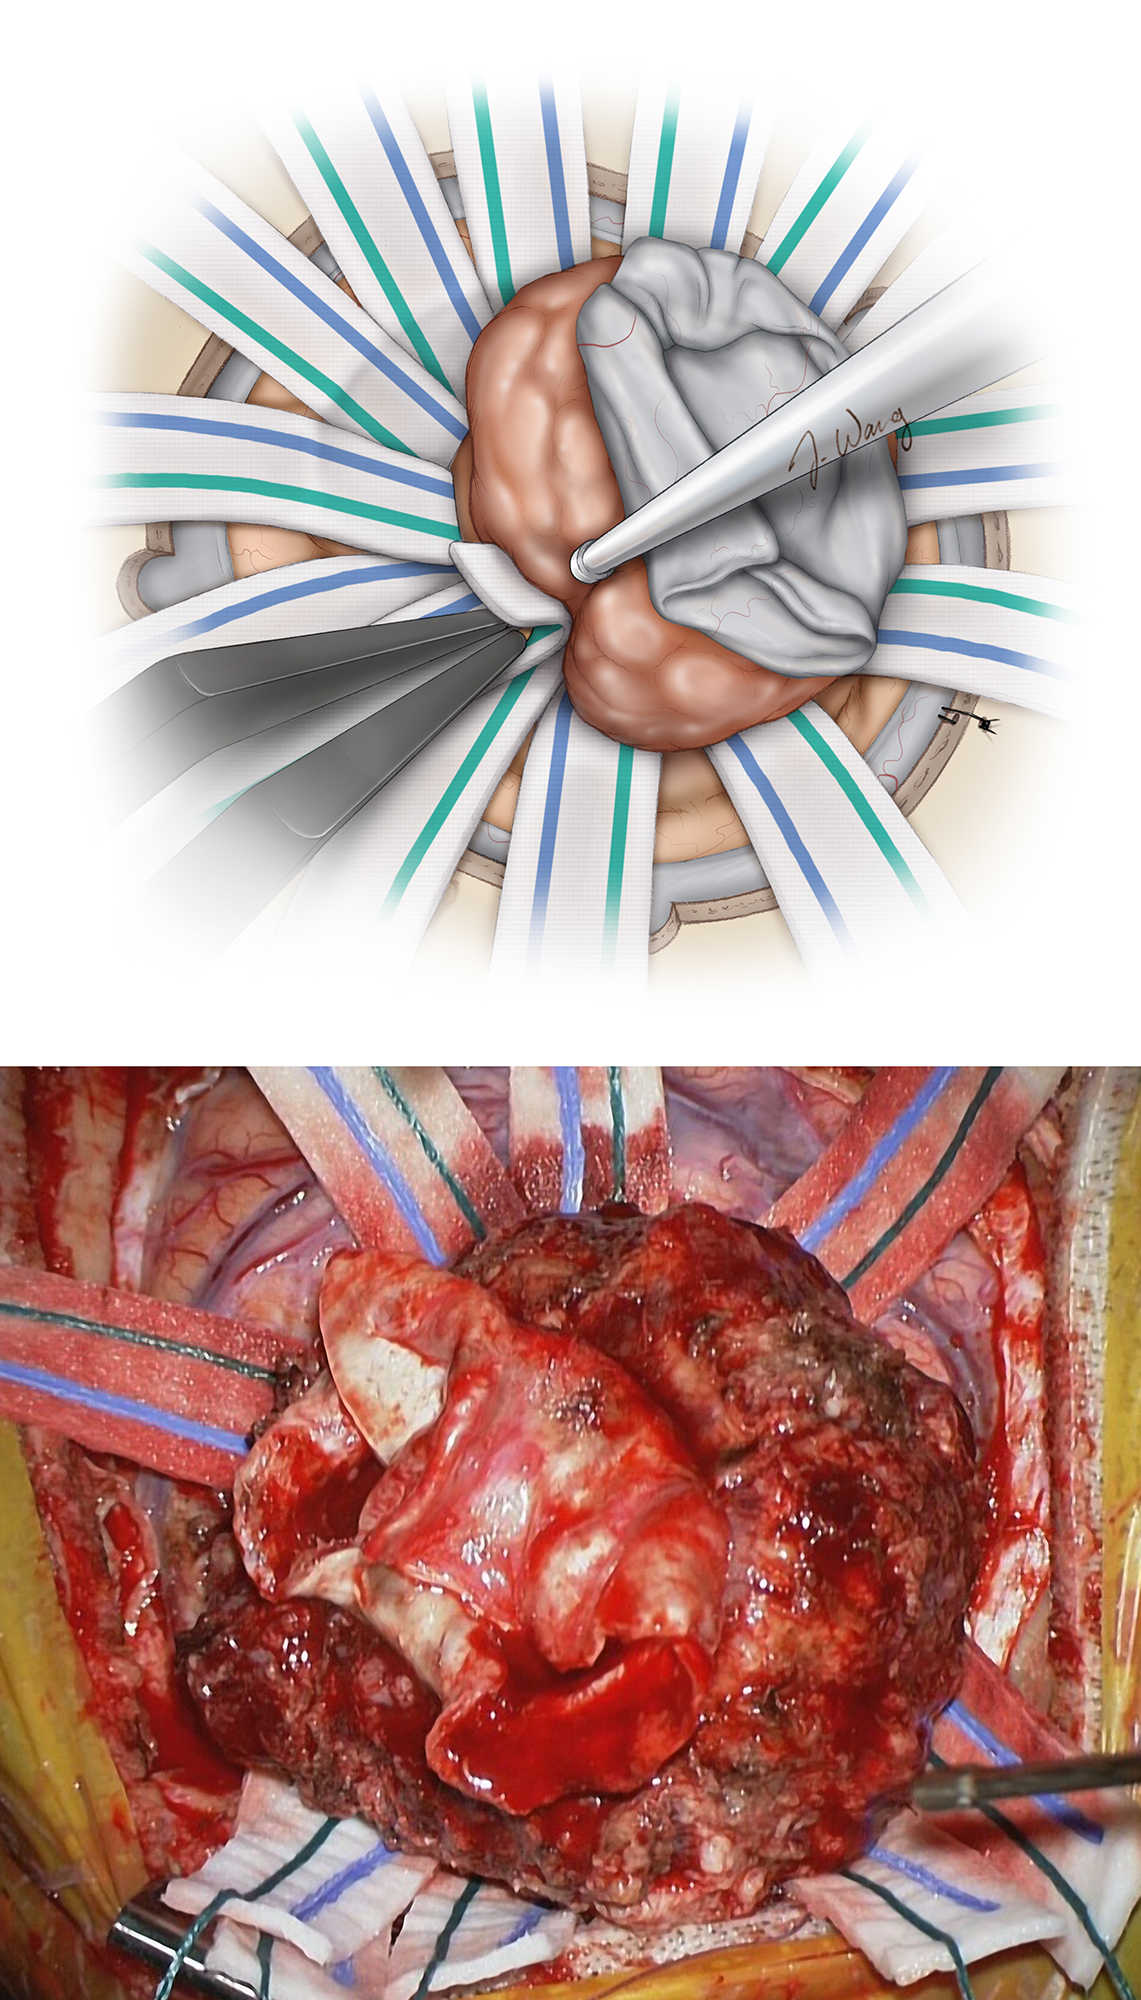 Figure 10: Once a superficial circumferential dissection is complete, the tumor is rolled away from the cortex to allow microdissection at the floor of the tumor bed. Long cottonoid patties are rolled into the depth of the resection cavity to create and preserve the tumor-brain interface (upper image). The tumor is circumferentially dissected free until it delivers itself from the cavity as the underlying brain re-expands (lower image).